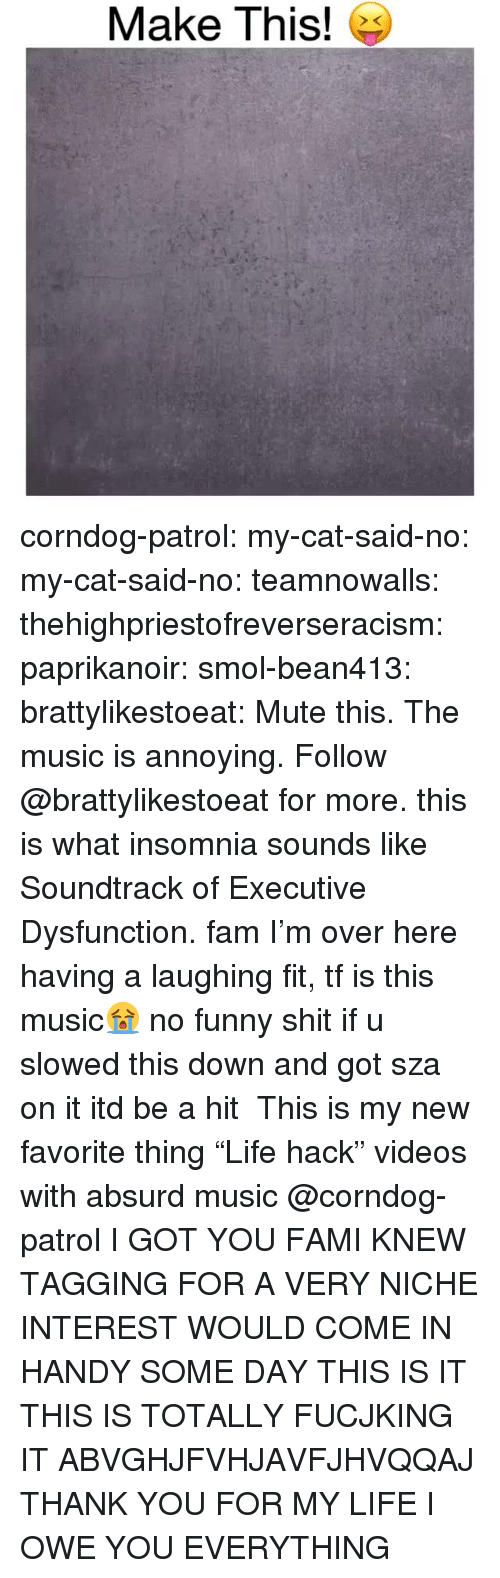 "Mute: Make This! e corndog-patrol: my-cat-said-no:  my-cat-said-no:  teamnowalls:  thehighpriestofreverseracism:  paprikanoir:  smol-bean413:   brattylikestoeat:  Mute this. The music is annoying. Follow @brattylikestoeat for more.  this is what insomnia sounds like   Soundtrack of Executive Dysfunction.  fam I'm over here having a laughing fit, tf is this music😭  no funny shit if u slowed this down and got sza on it itd be a hit    This is my new favorite thing ""Life hack"" videos with absurd music   @corndog-patrol I GOT YOU FAMI KNEW TAGGING FOR A VERY NICHE INTEREST WOULD COME IN HANDY SOME DAY  THIS IS IT THIS IS TOTALLY FUCJKING IT ABVGHJFVHJAVFJHVQQAJ THANK YOU FOR MY LIFE I OWE YOU EVERYTHING"